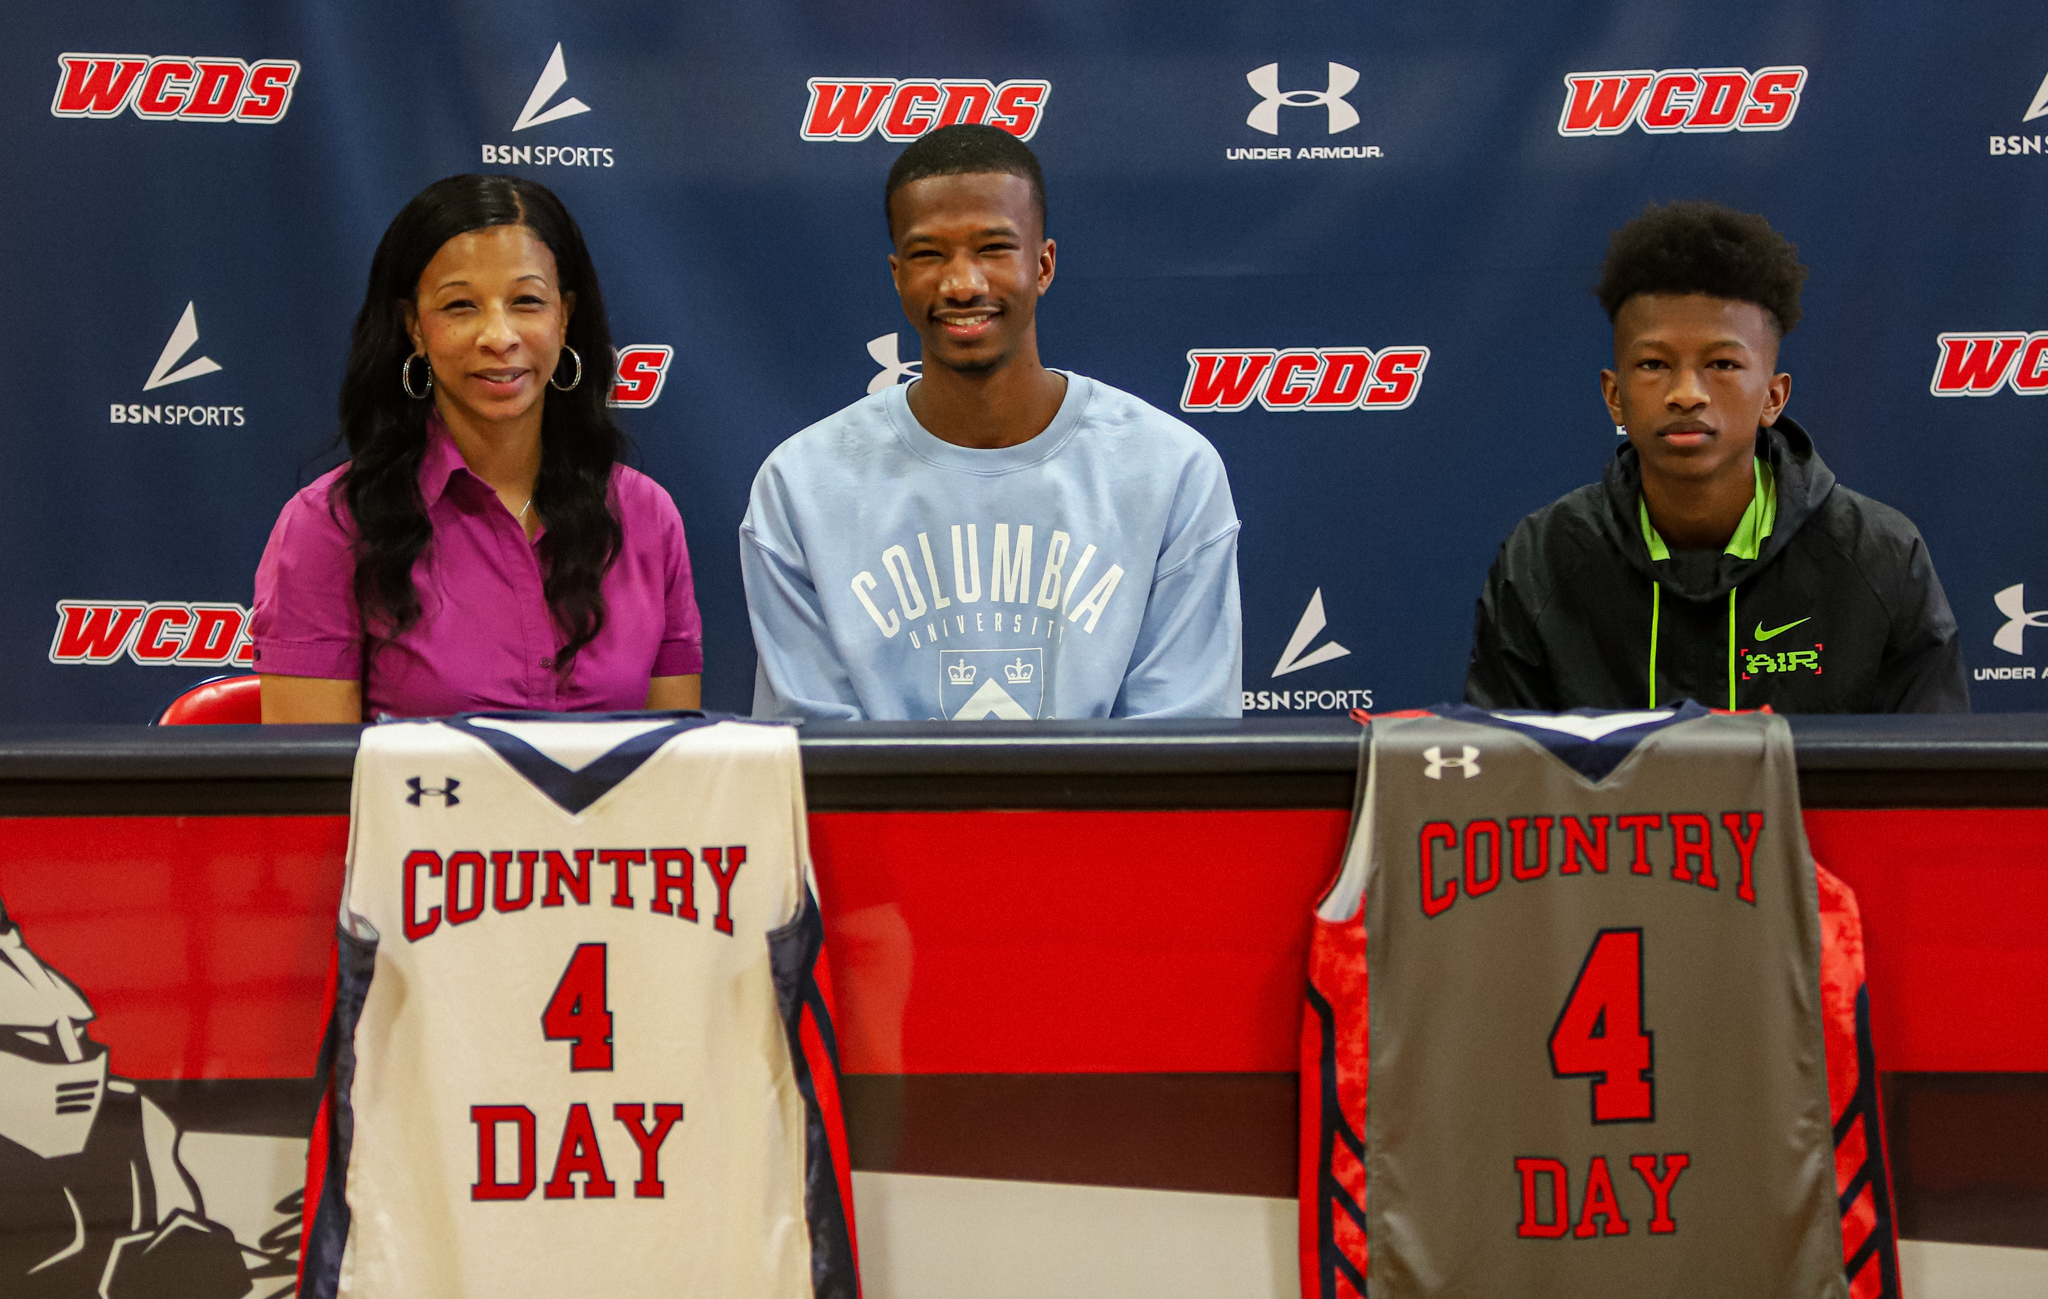 WCDS' Jaden Cooper Signs NLI With Columbia University